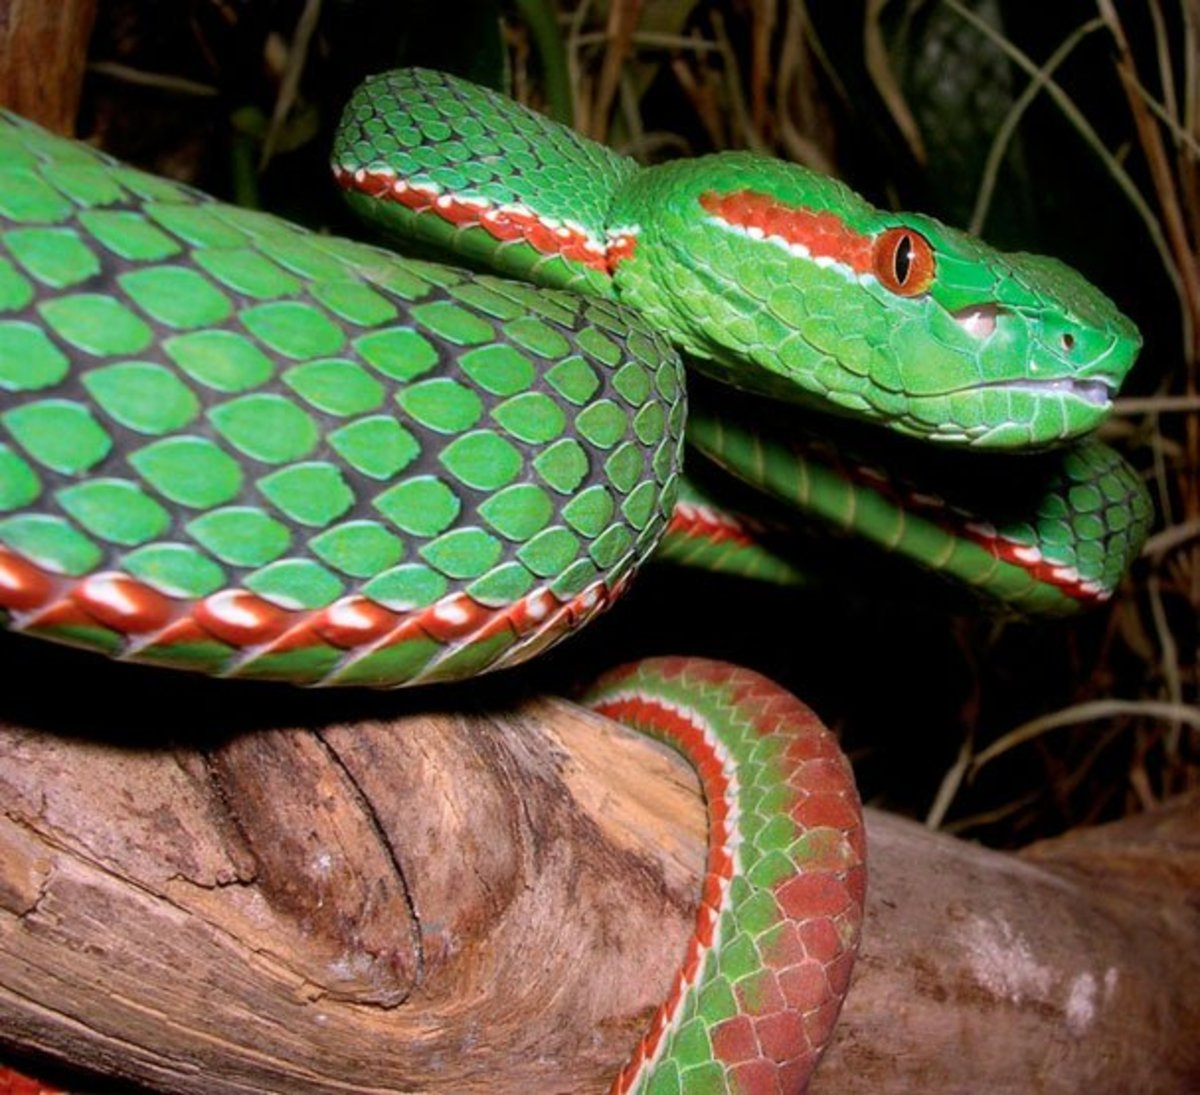 13 Most Beautiful Snakes in the World